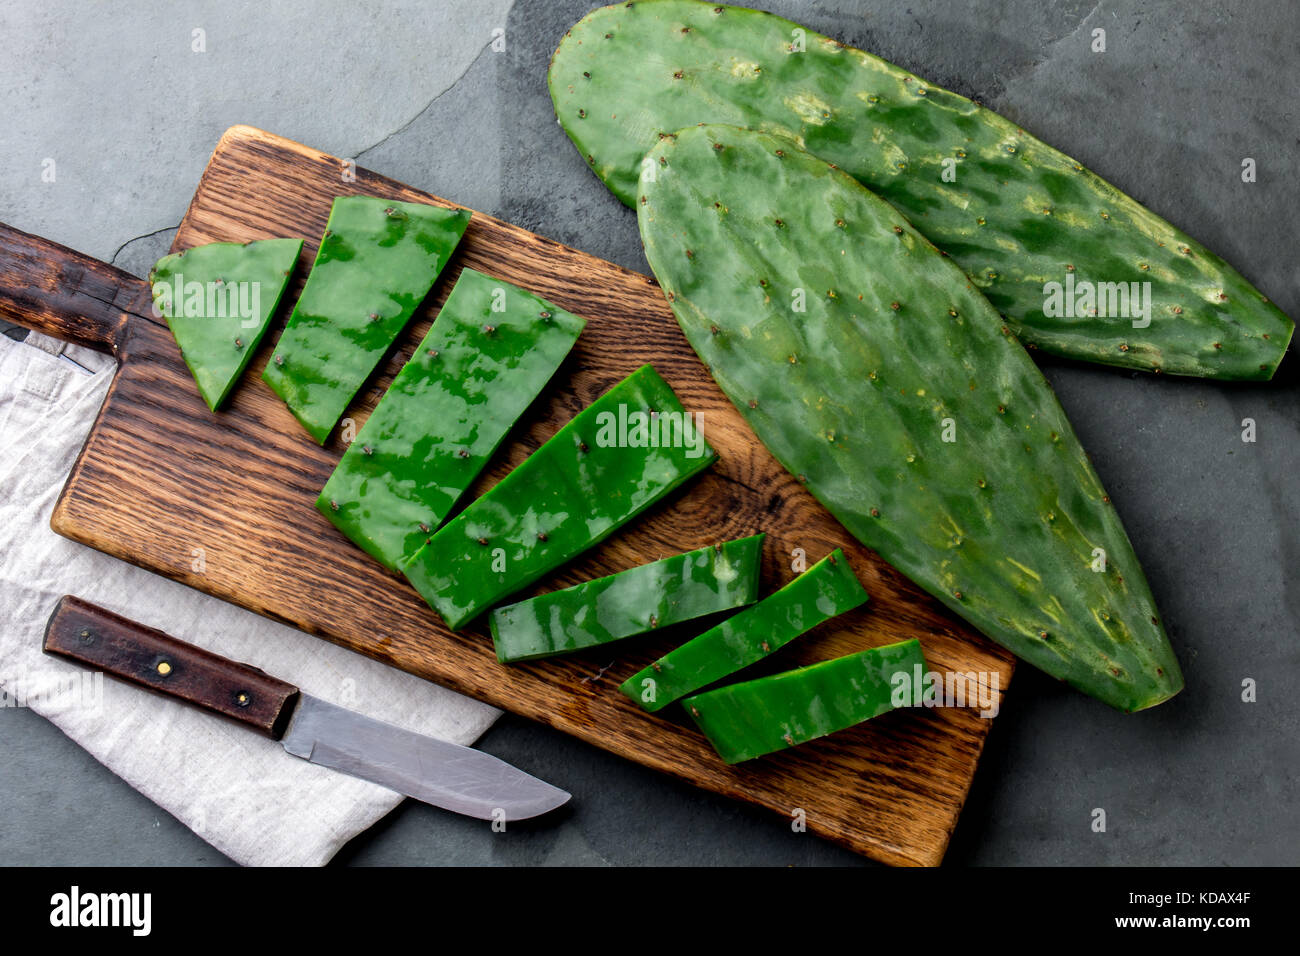 Leave of cactus nopales. Mexican food and drink ingredient - Stock Image